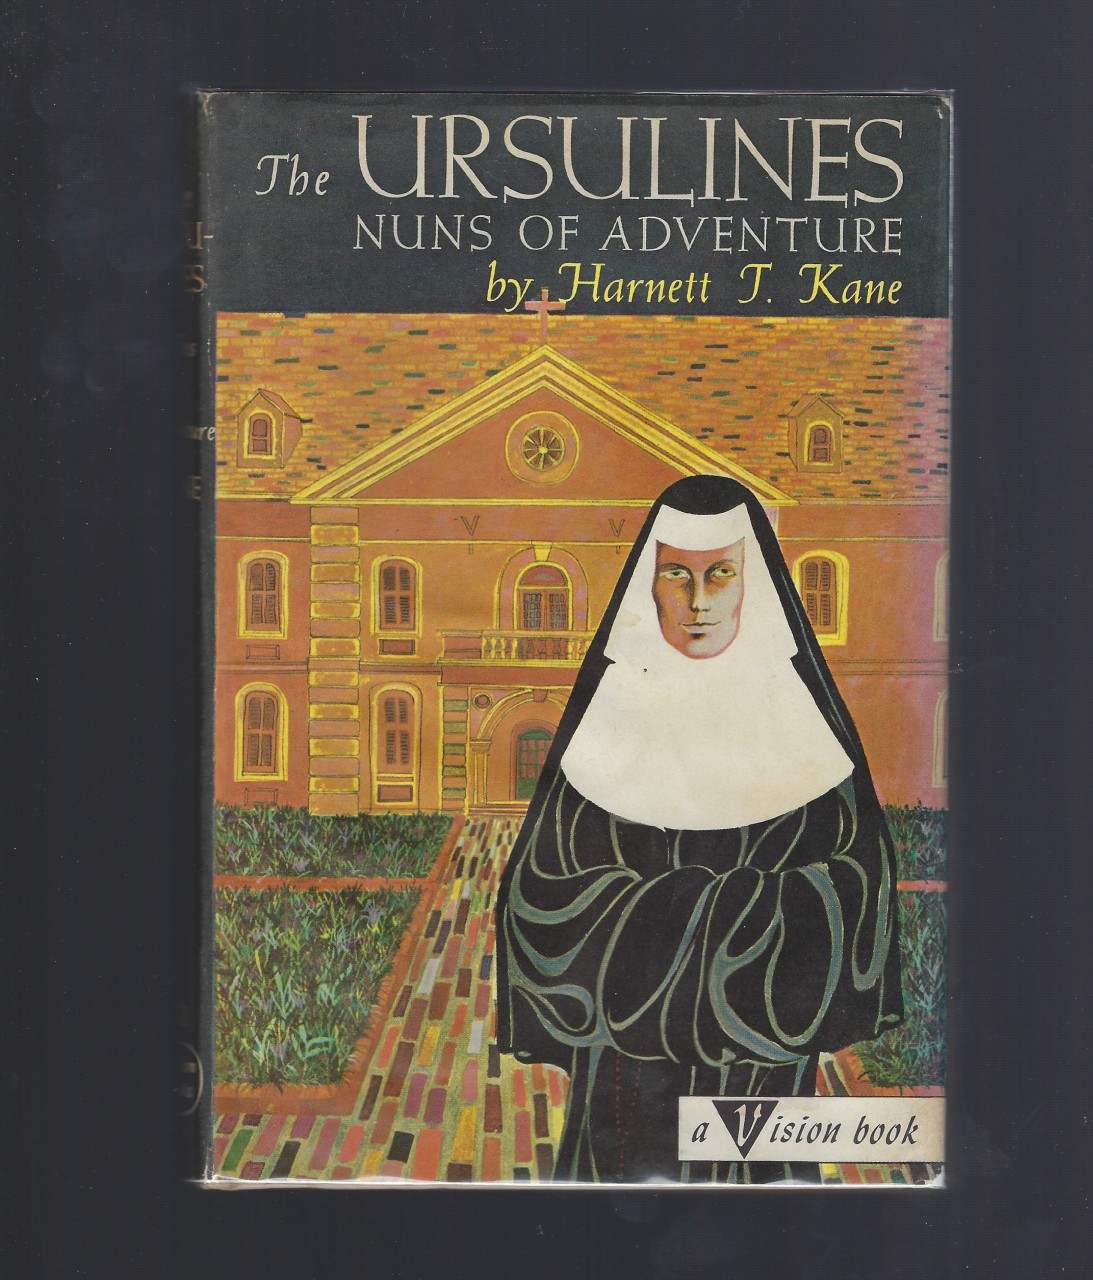 The Ursulines Nuns of Adventure #42 VisionCatholic HB/DJ, Harnett T. Kane